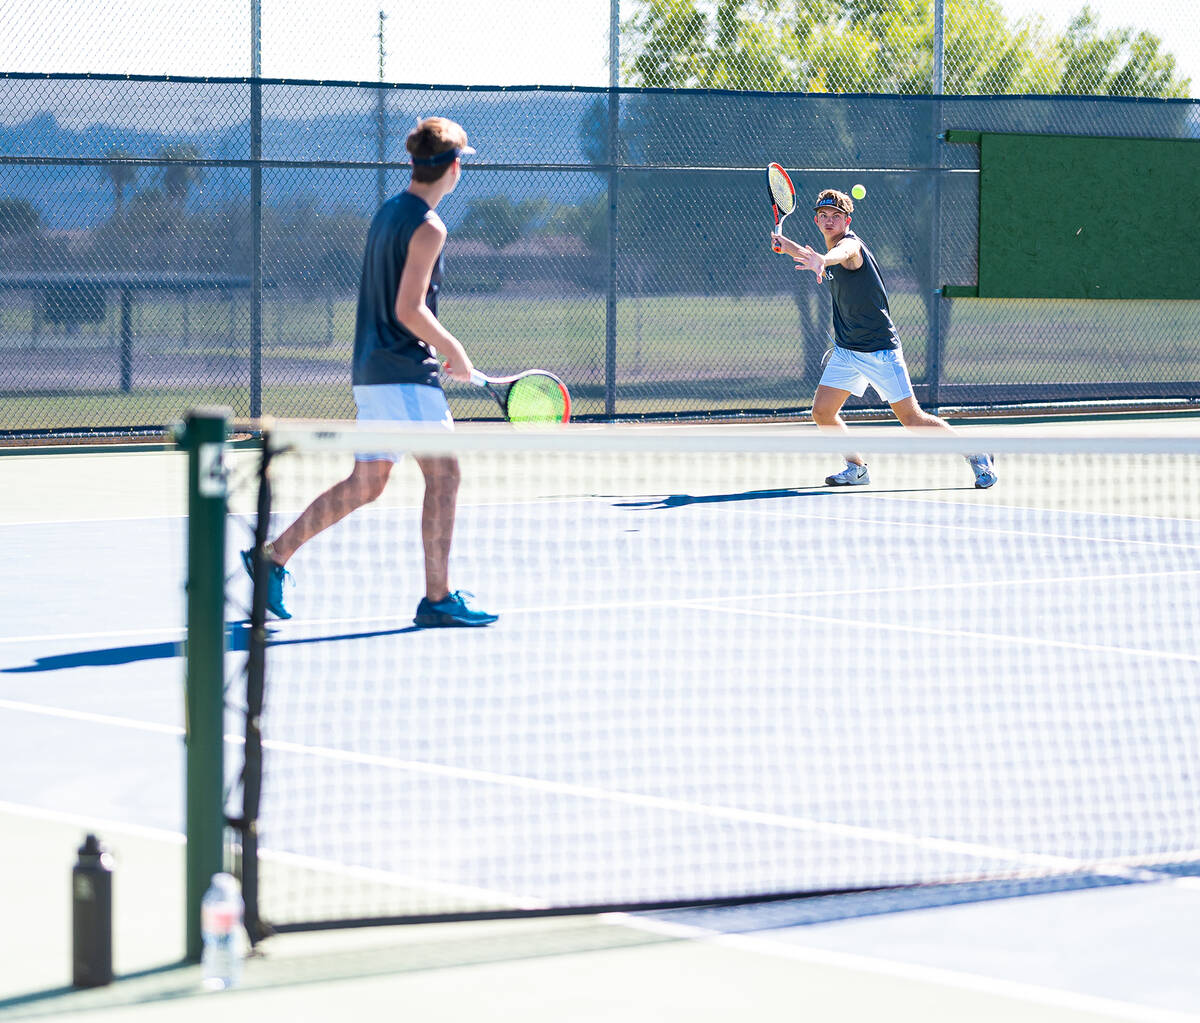 (Jamie Jane/Boulder City Review) Seniors Kannon, left, and Kenny Rose finished 2-1 against The ...